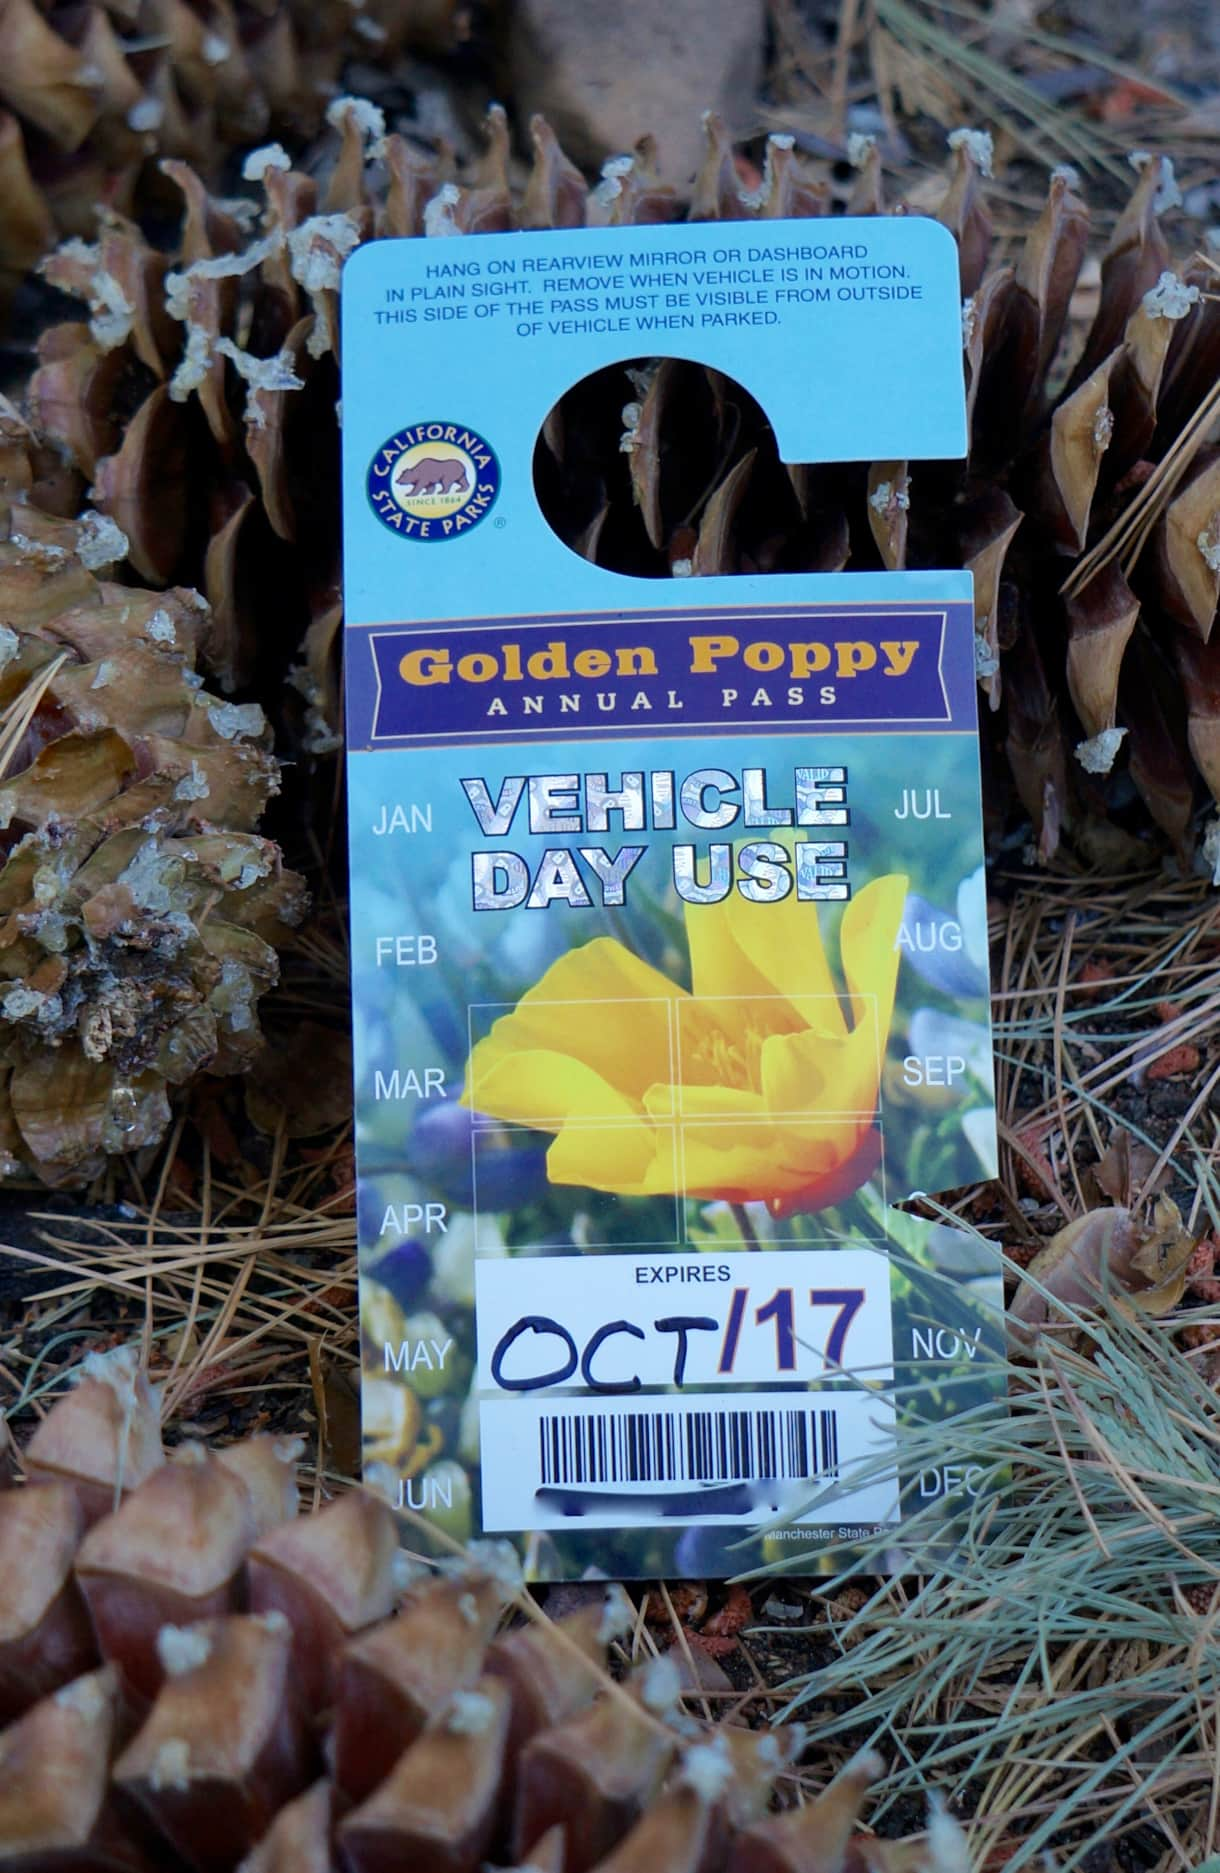 Golden Poppy Pass - free admission for 1 car to Big Trees State Park